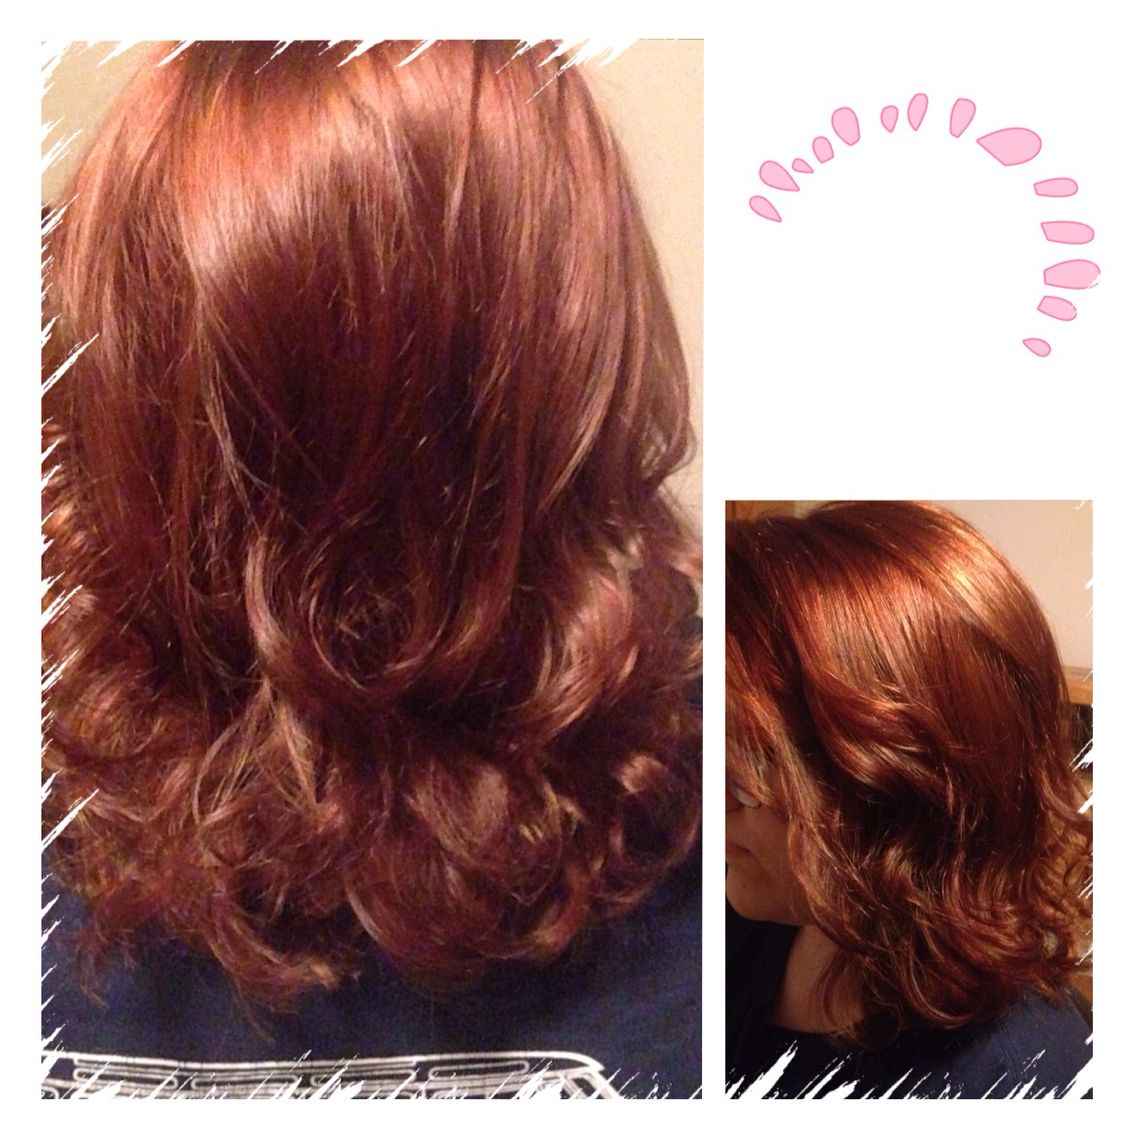 Shoulder length cut with long layers (brownish gold color)